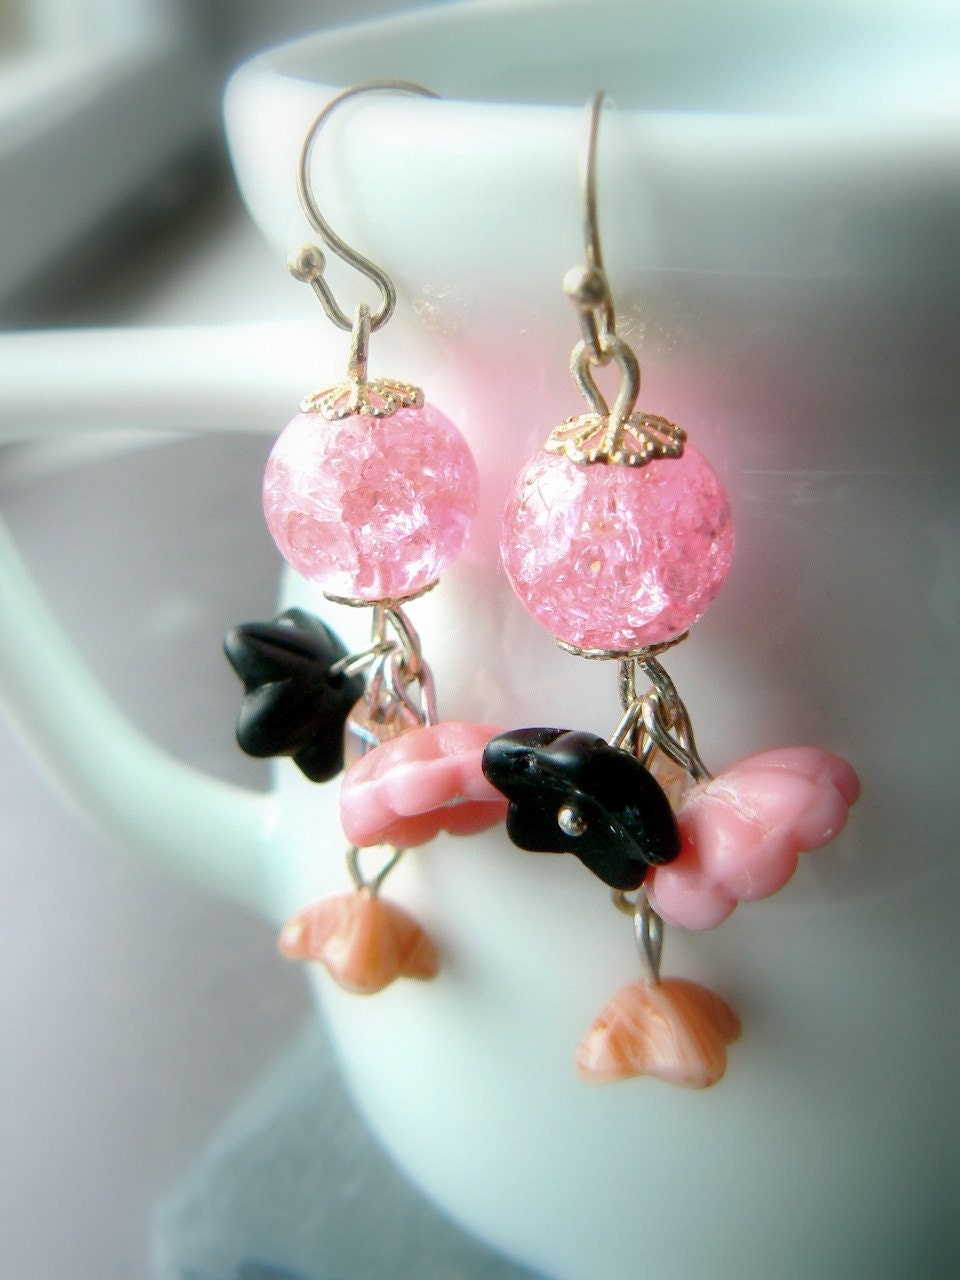 SALE - Rosebud - earrings made of glass beads